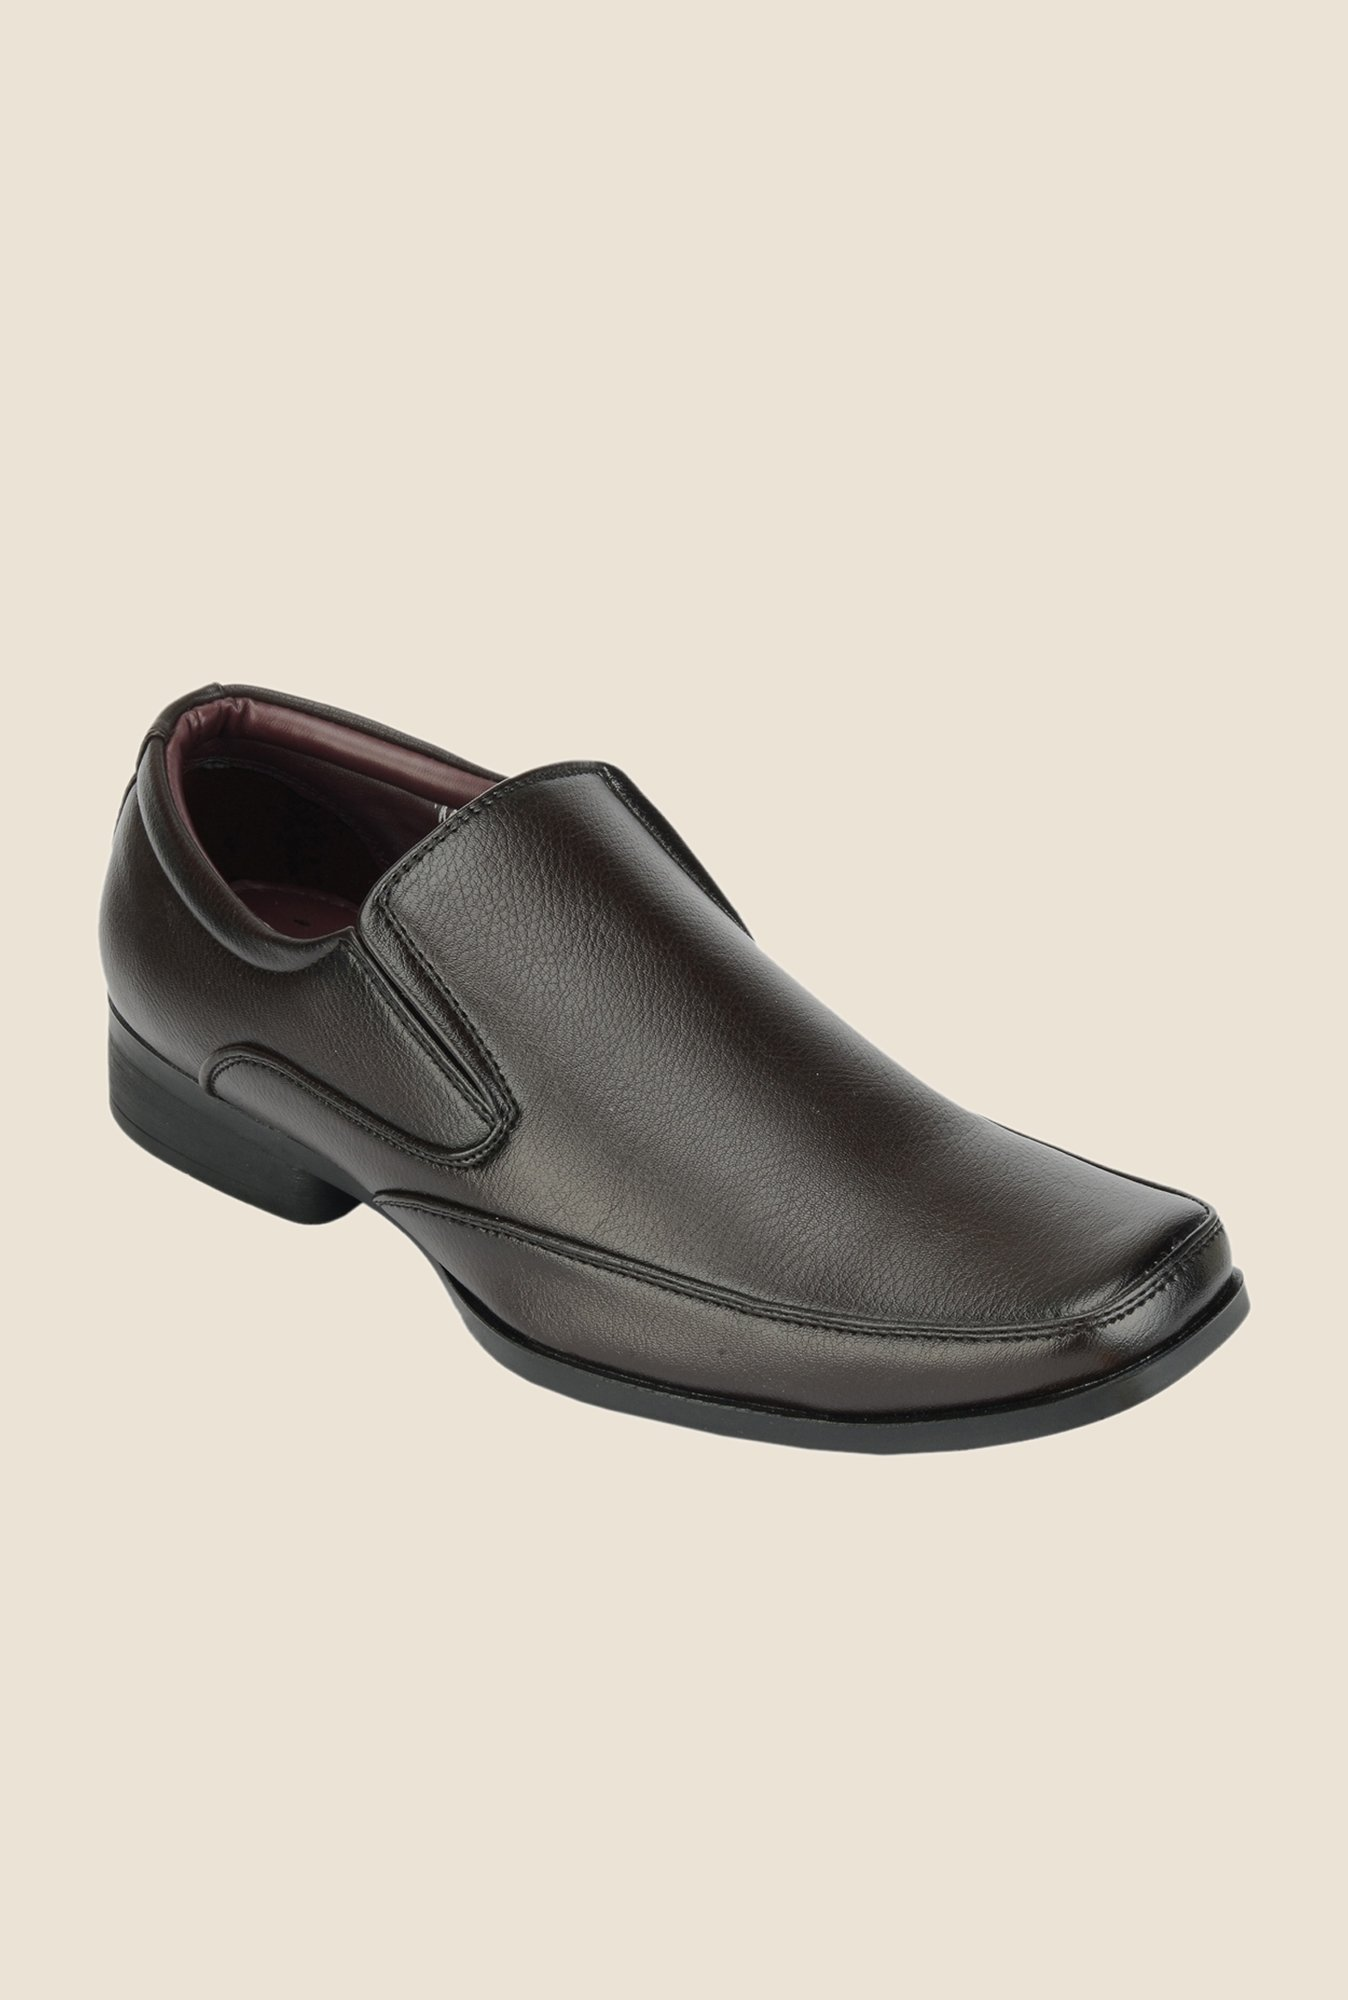 Khadim's Lazard Brown Slip-Ons